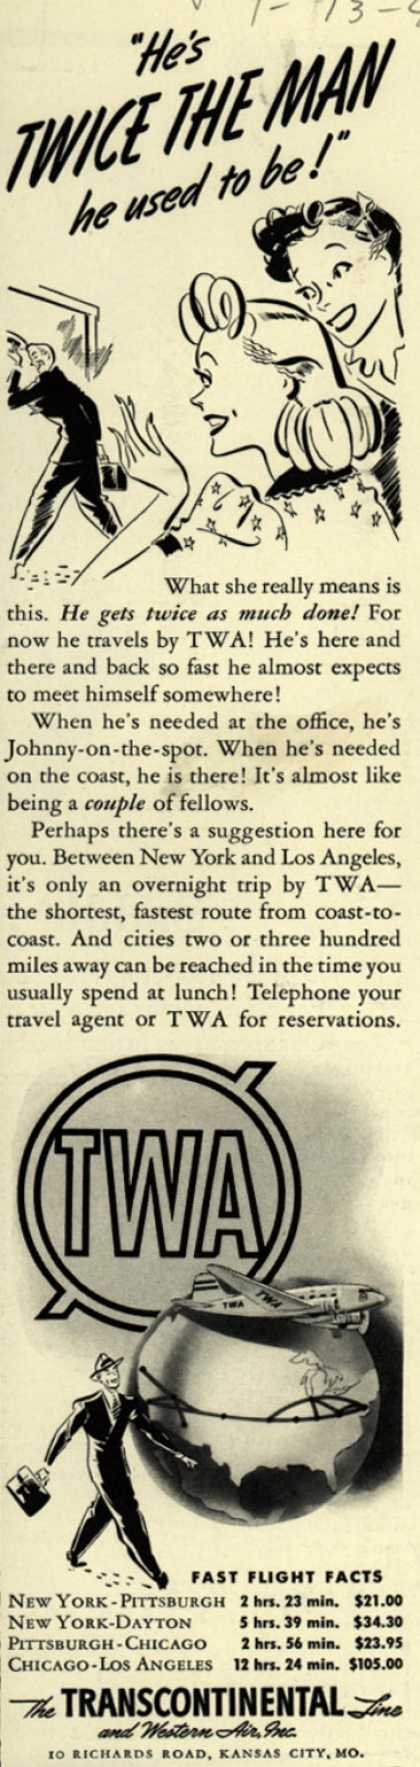 "Transcontinental & Western Air's Business Travel – ""He's Twice The Man he used to be!"" (1940)"